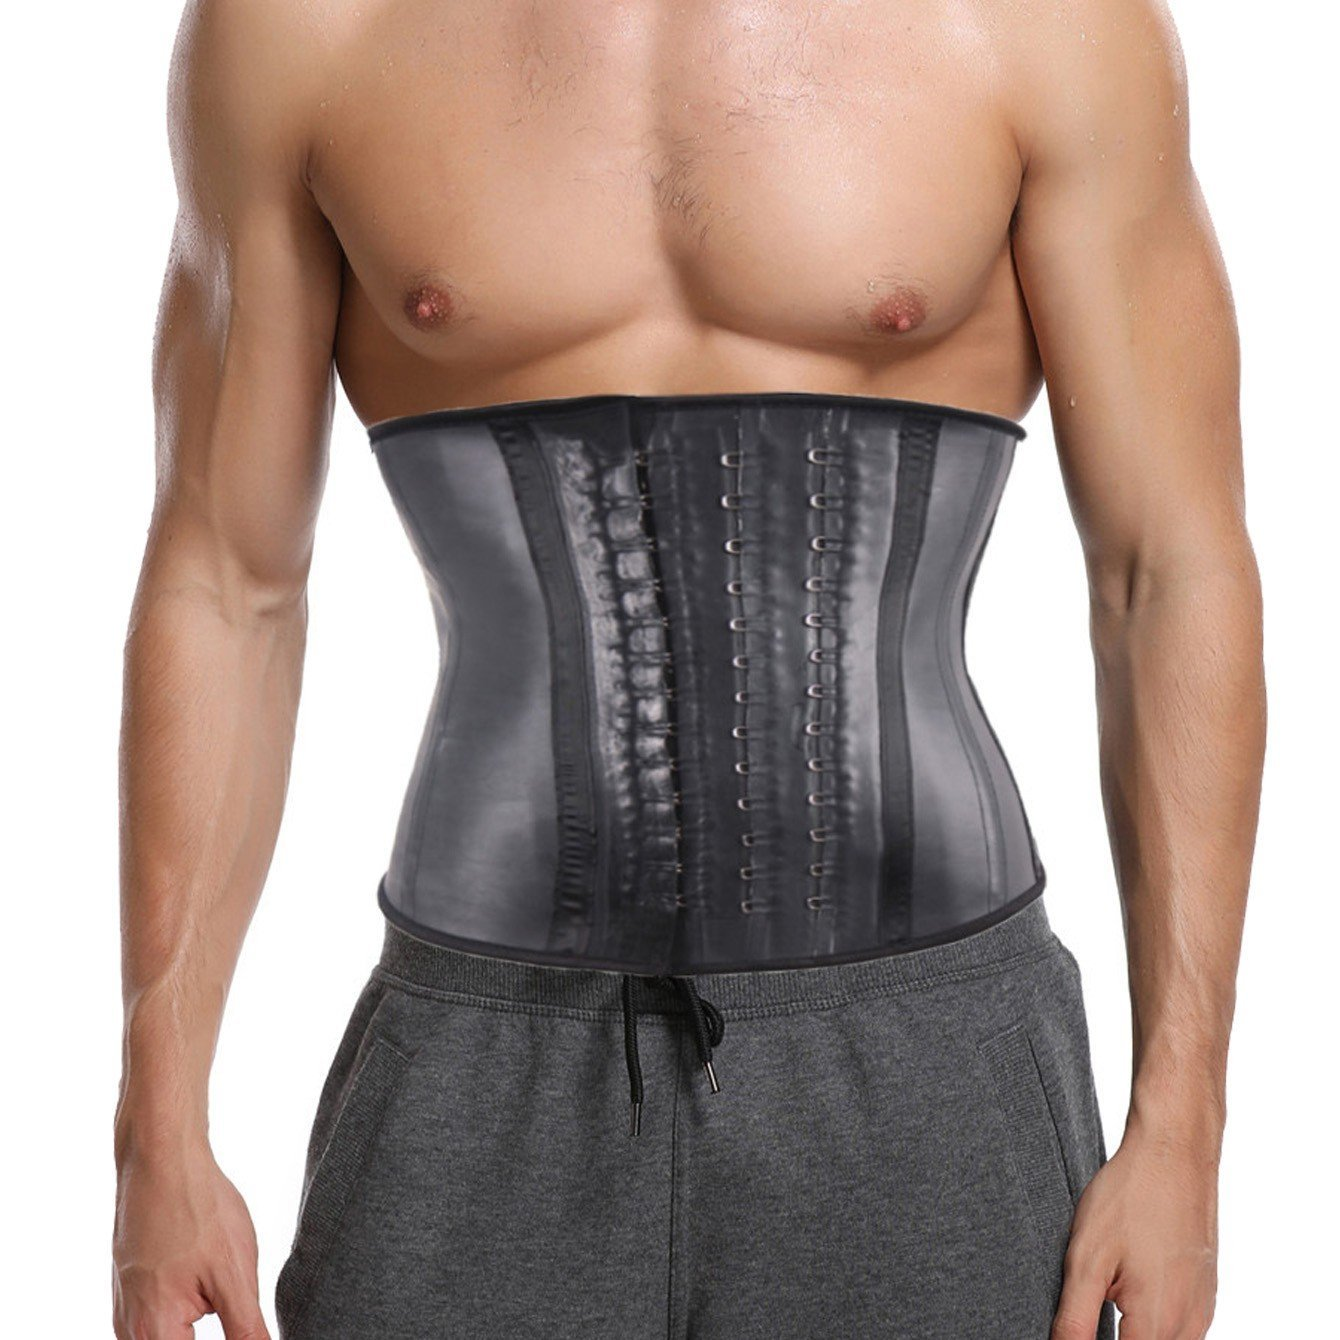 CROSS1946 Men's 100% Latex Waist Trainer Fitness Sweat Workout for Weight Loss Steel Bones Underbust Corset